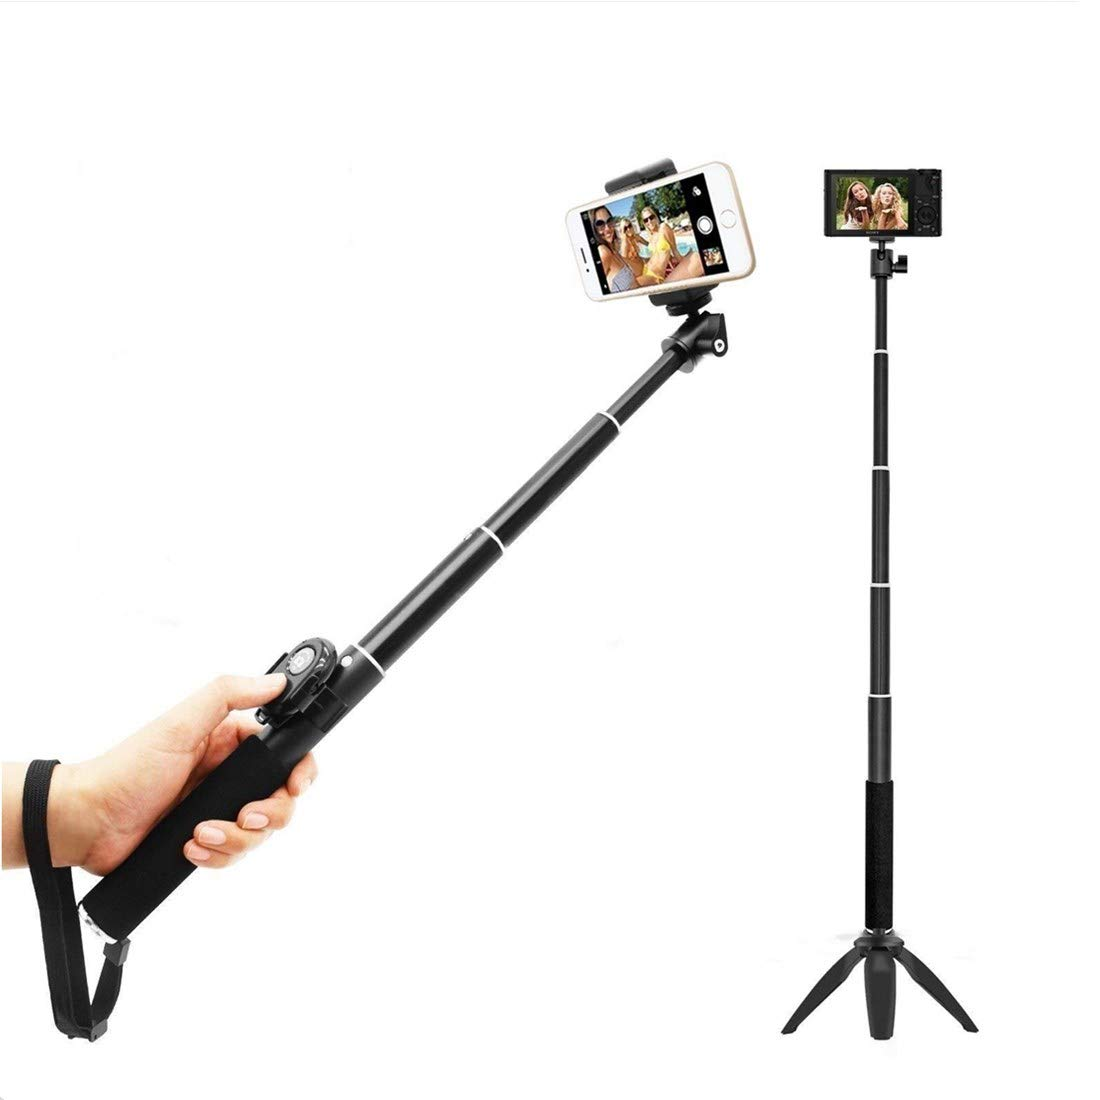 Professional High End Alloy Rugged Selfie Stick, Tripod with Bluetooth Remote for 3-in-1 Kit Universal: iPhone, Android, GoPro or Camera – iPhone X/8/8P/7/7P/6s/6P/5S, Galaxy S6/S7/S8 (Black)